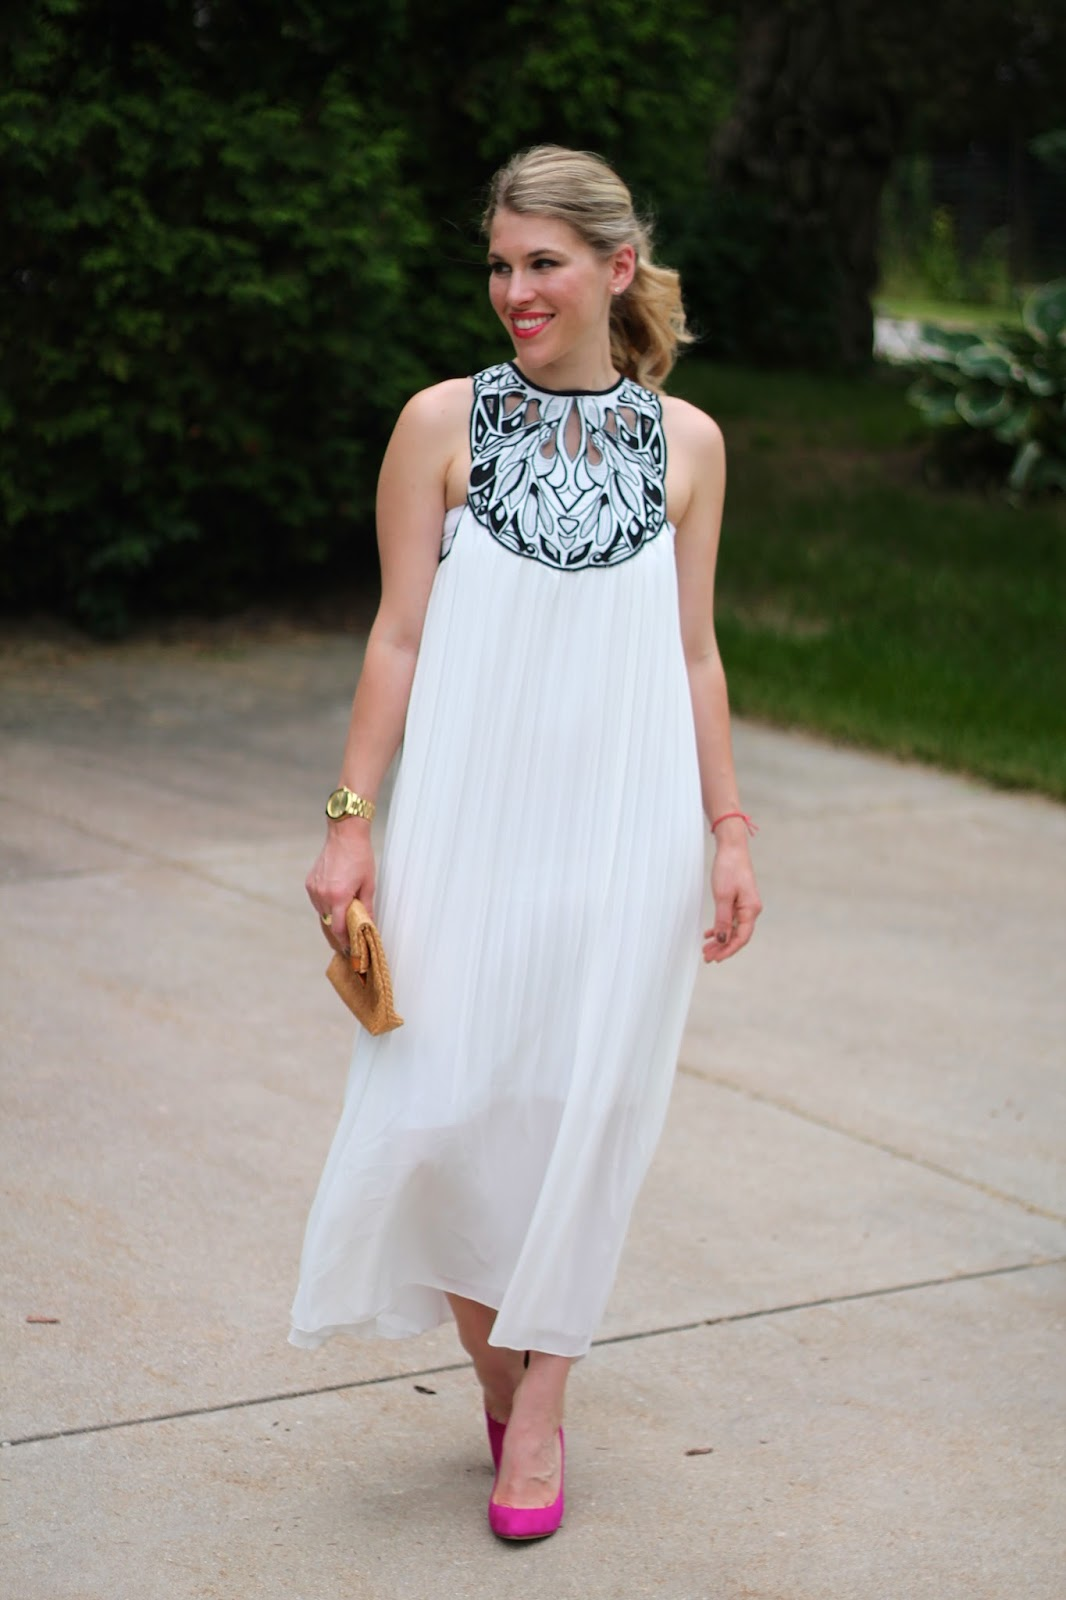 I do deClaire: Two Summer Looks with ShowInBuy